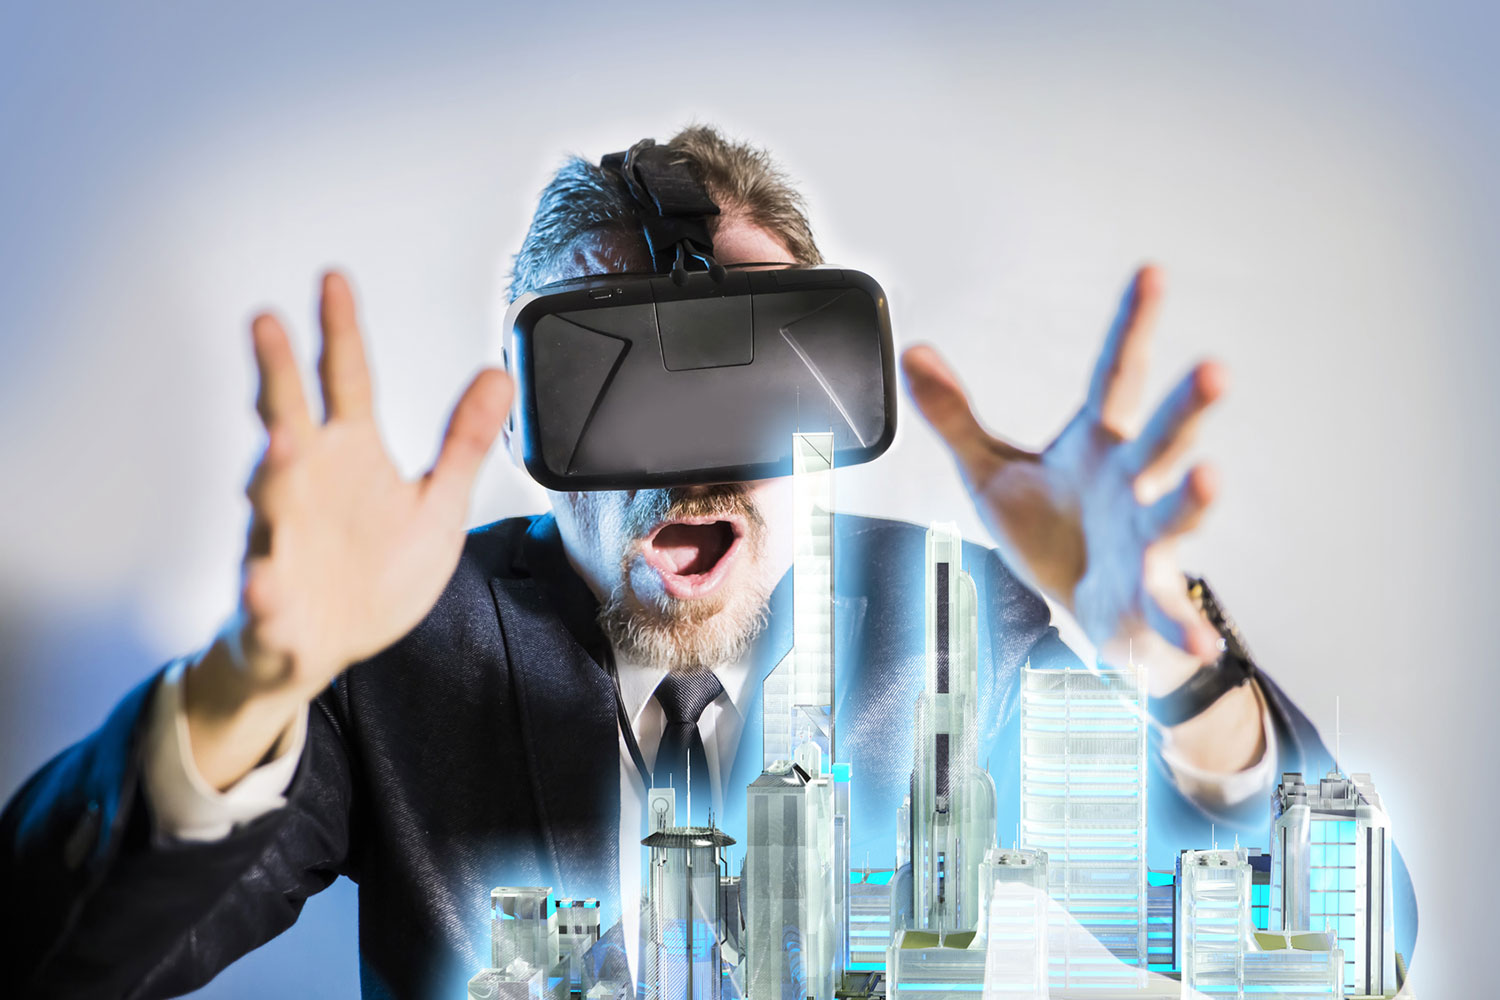 immobilier-digital-realite-virtuelle